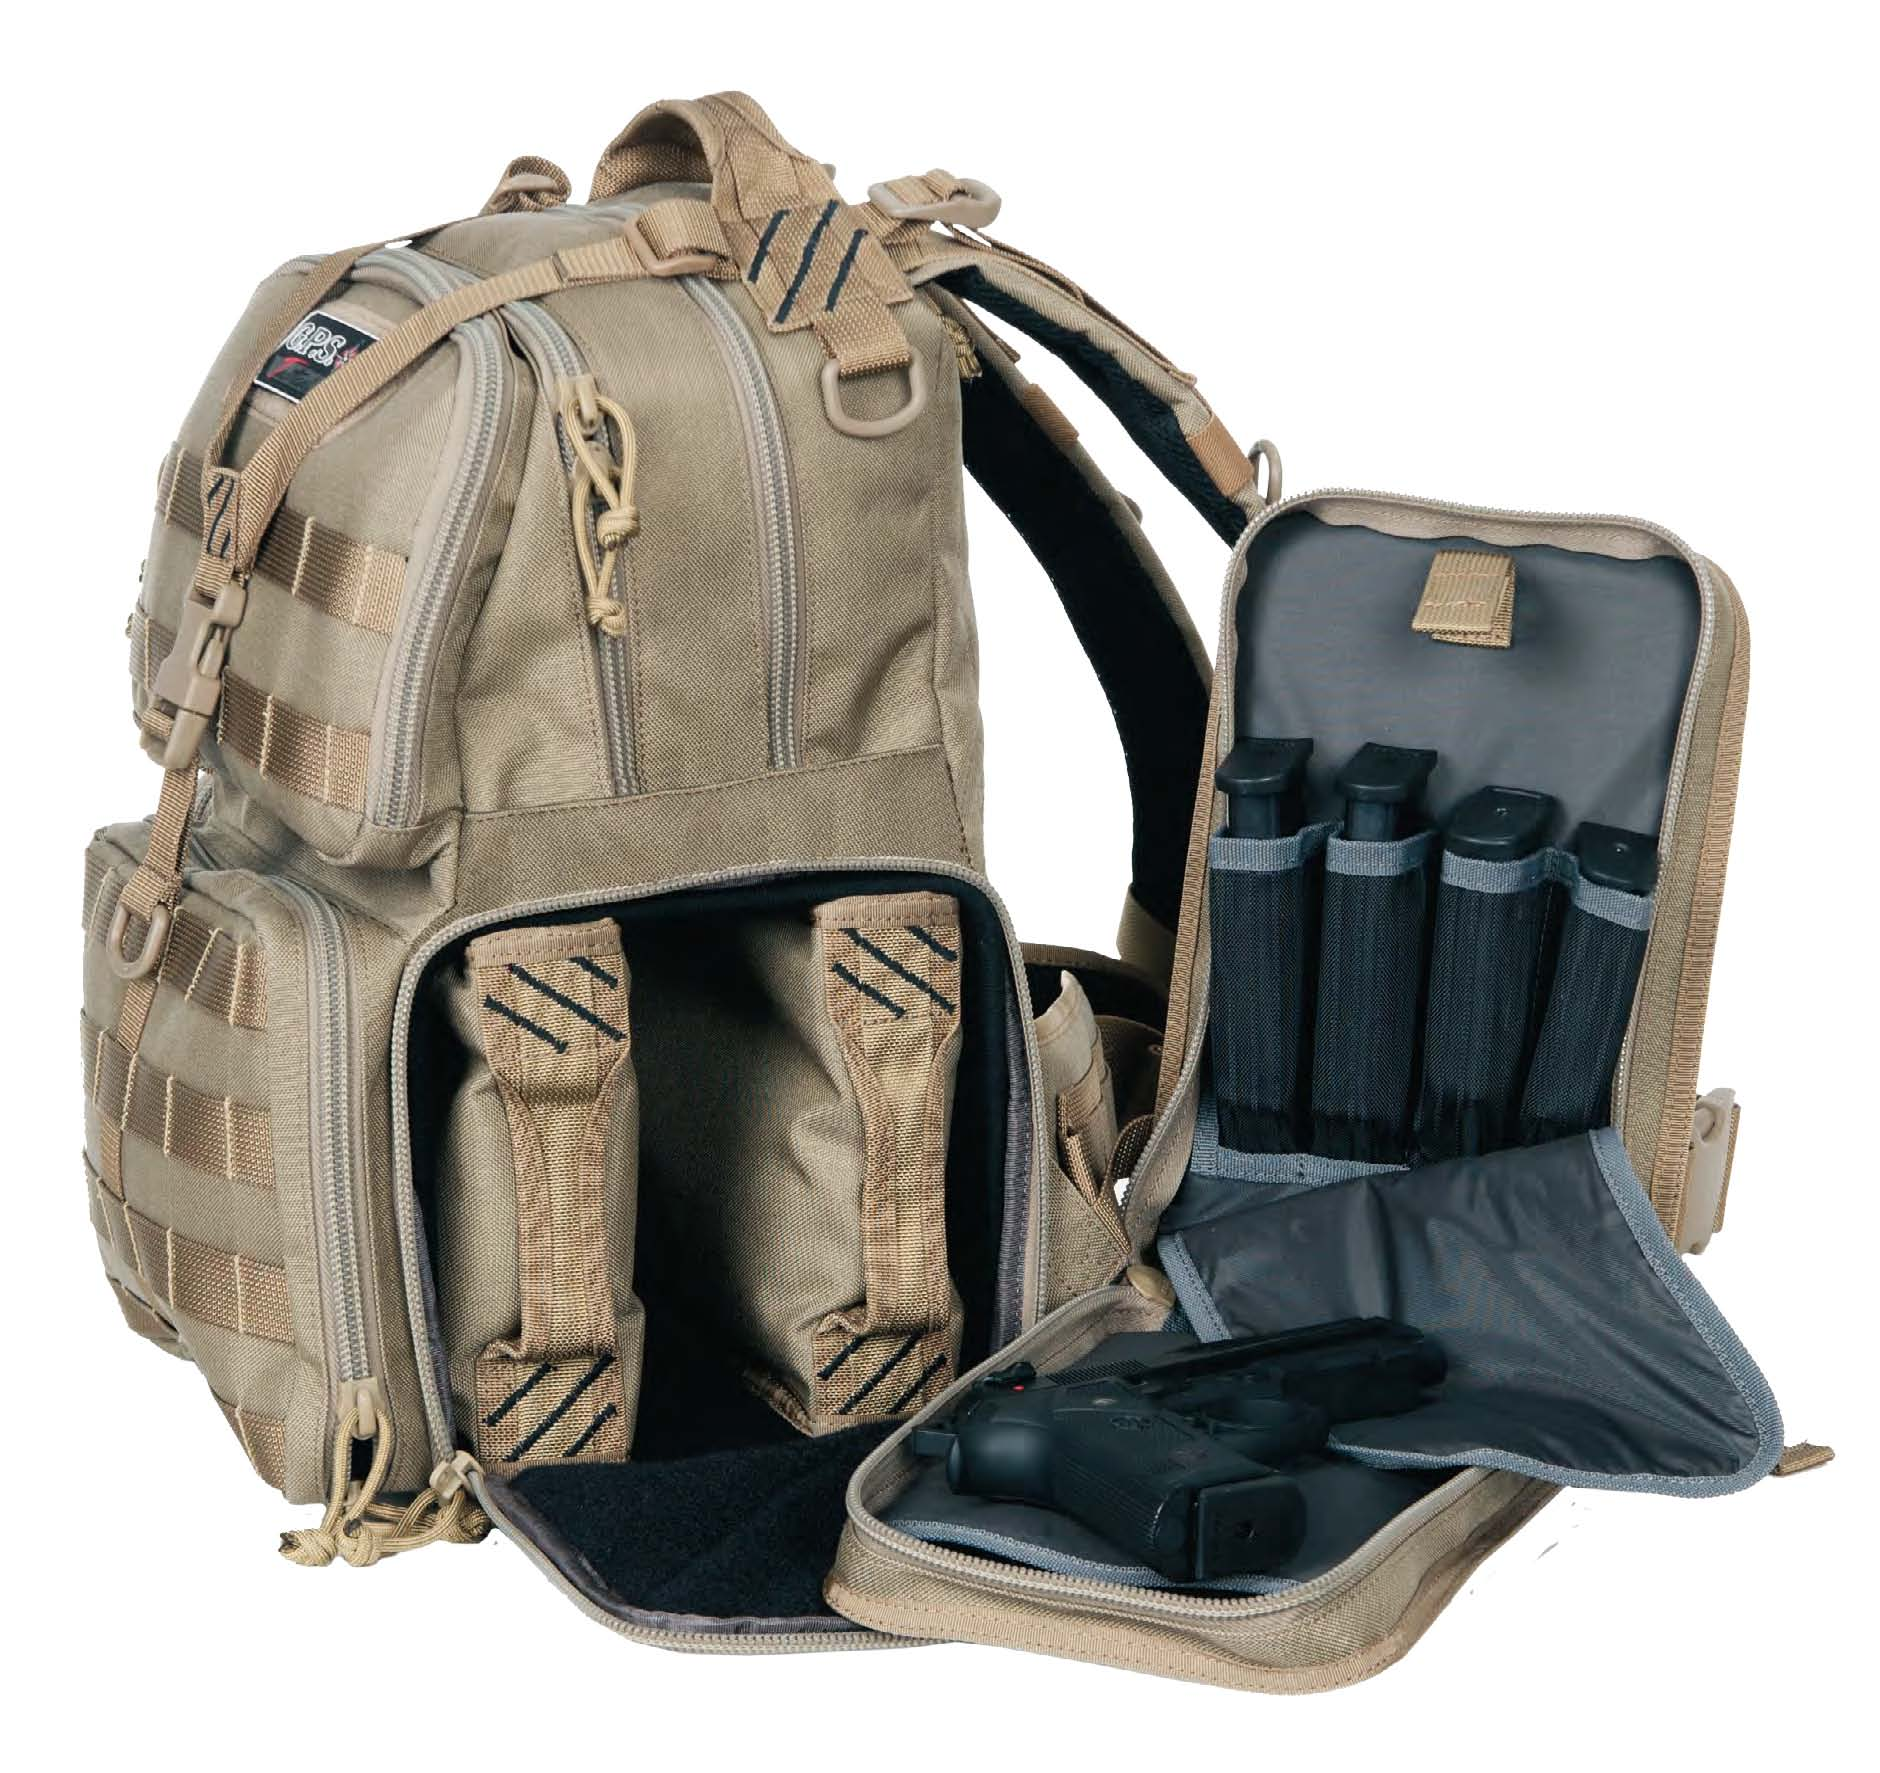 G.P.S. Tactical Range Backpack Review